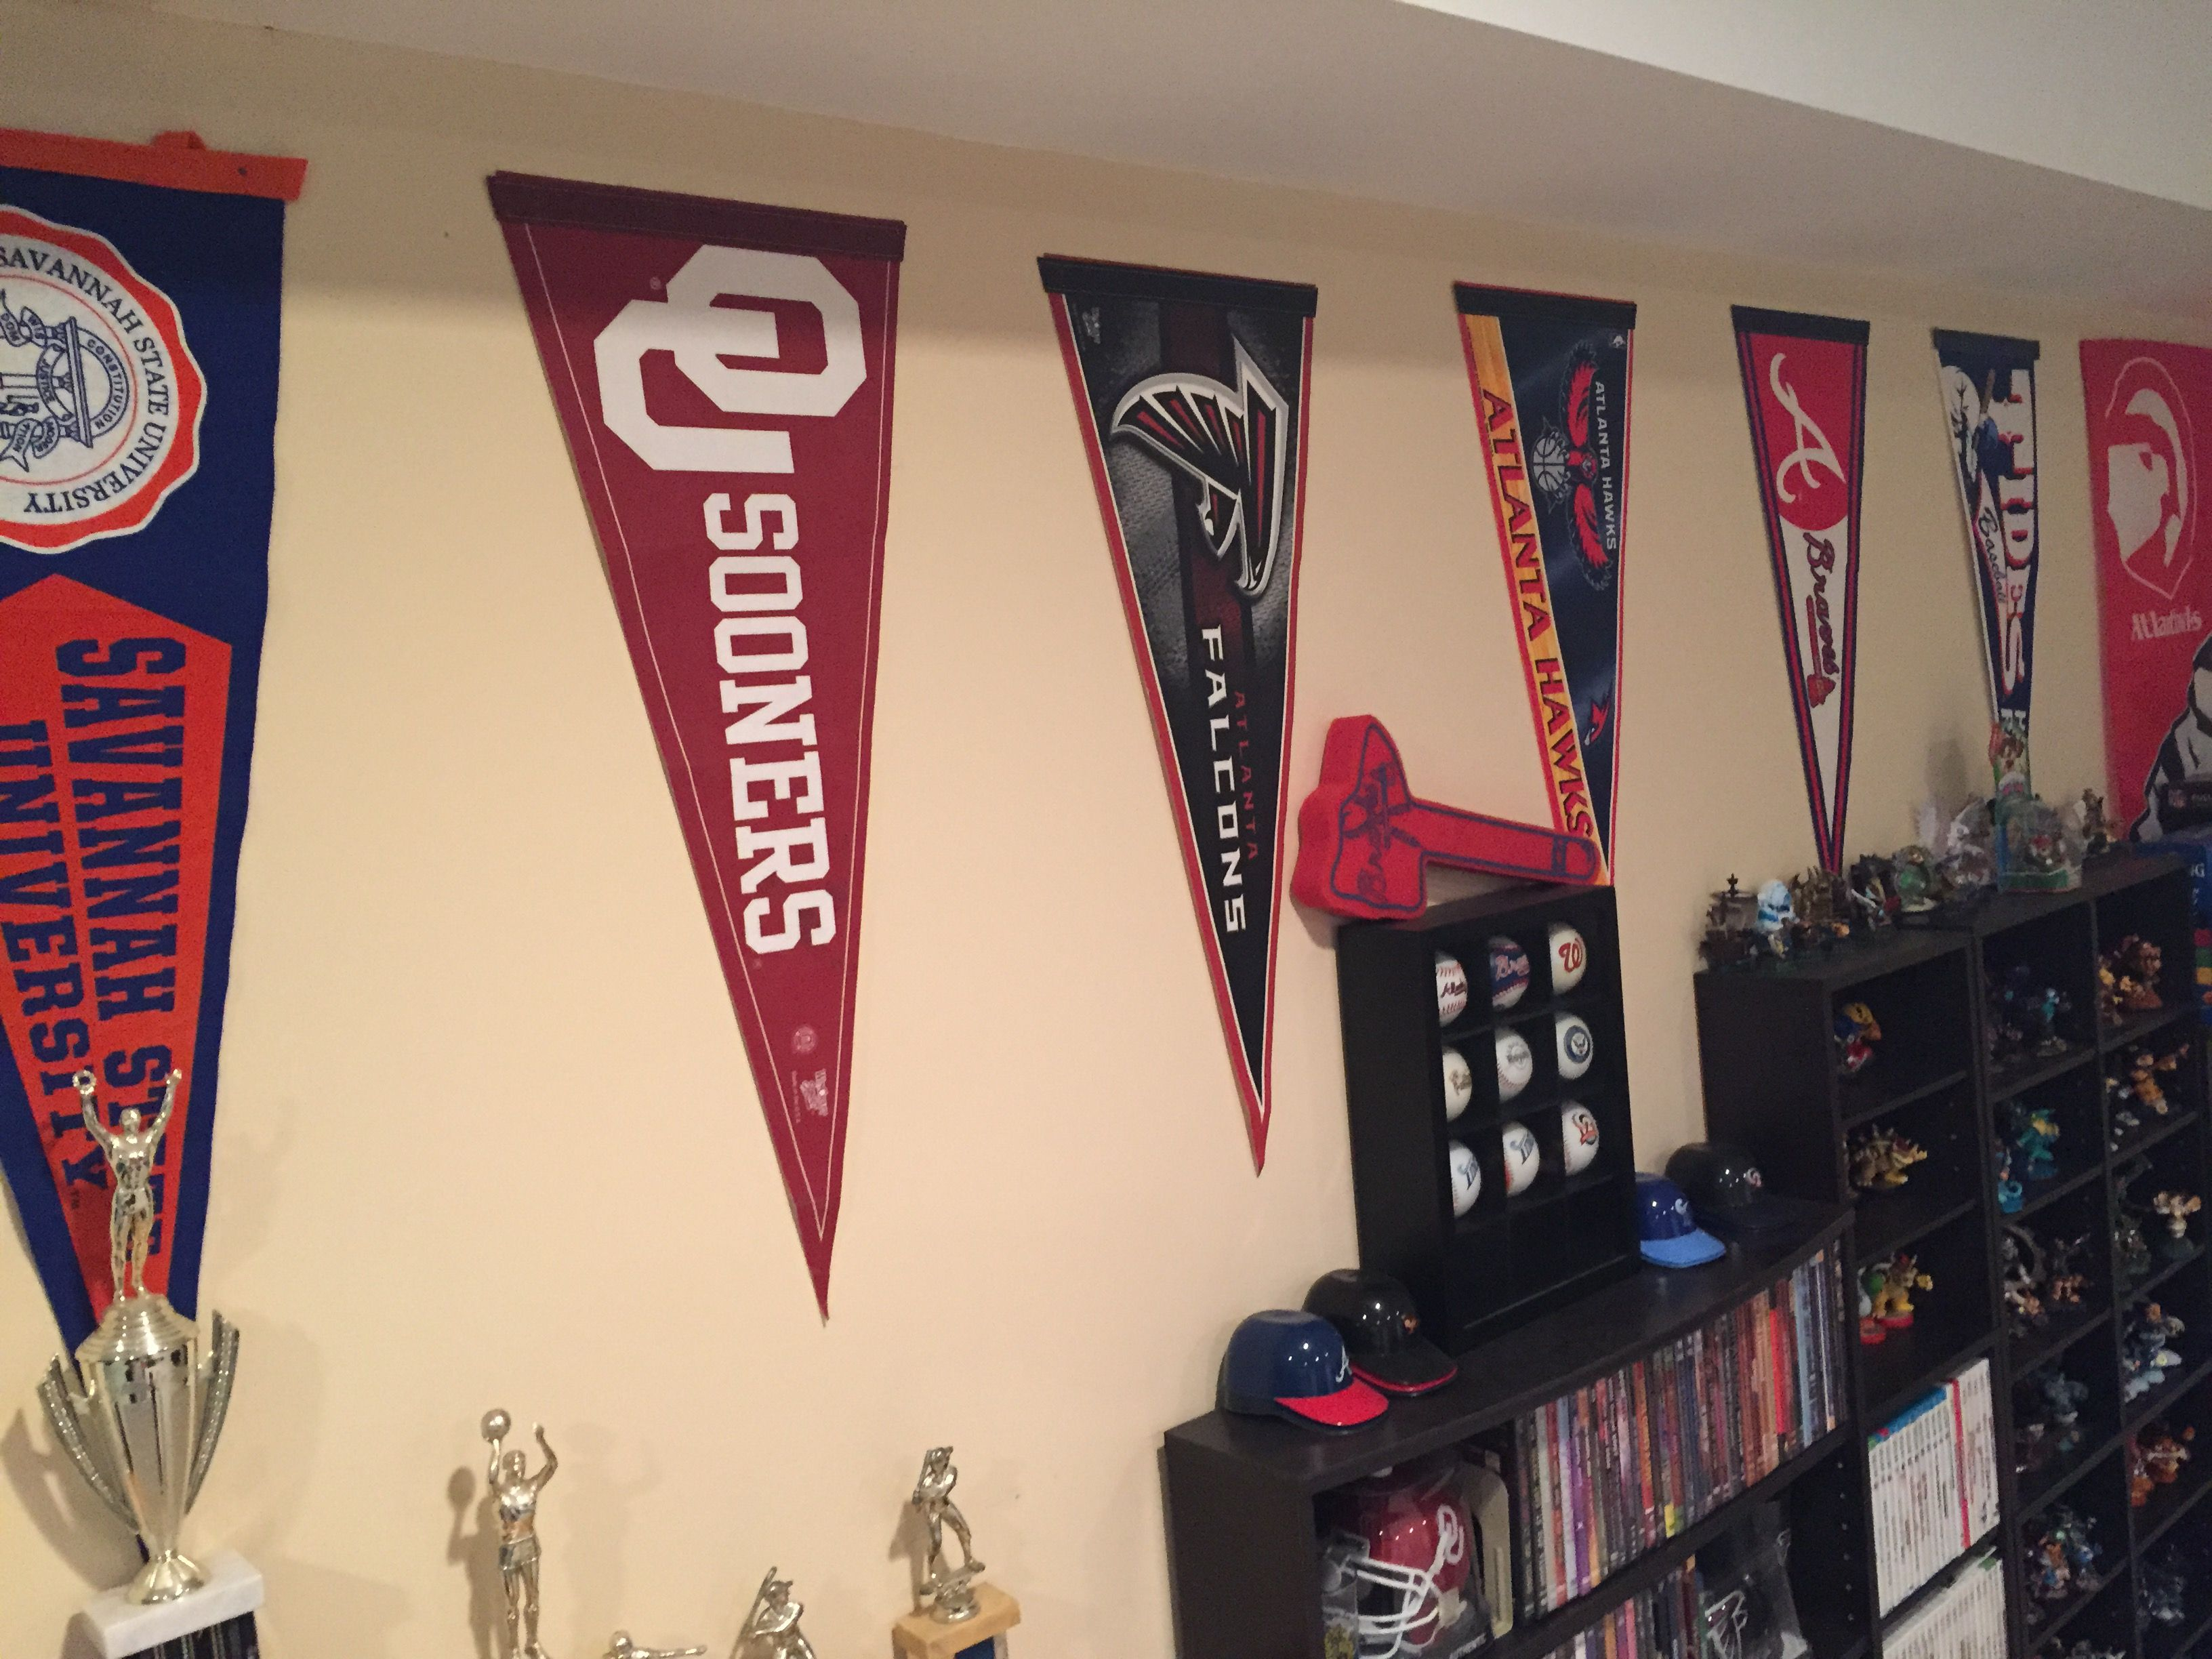 Man Cave Pennant Display Pennants From My Favorite Sports Teams Line My Man Cave Wall Man Cave Wall Office Items Man Cave